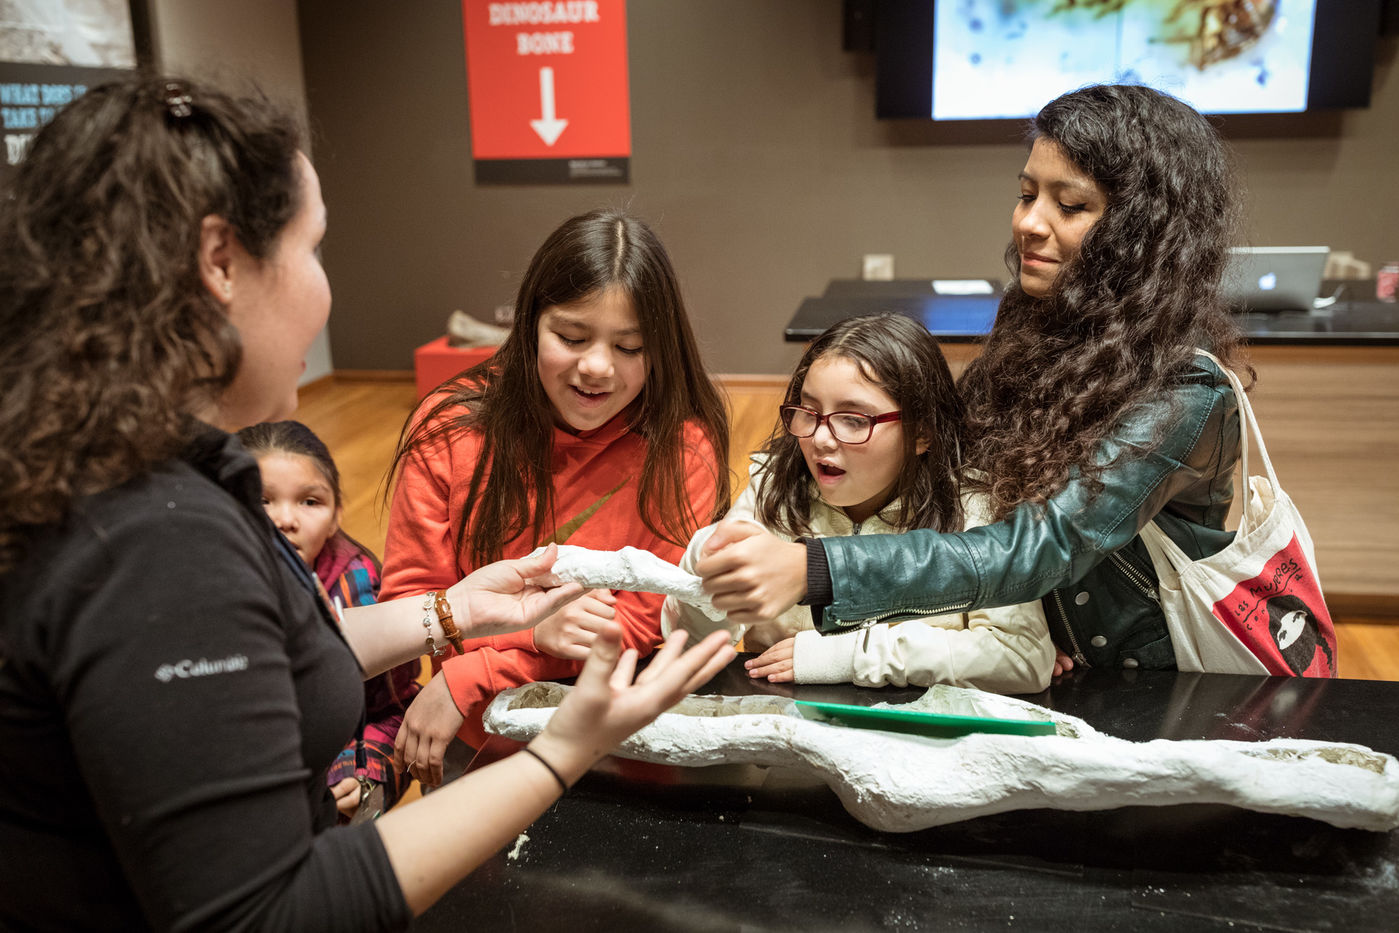 A woman and three children gather around an educator holding a specimen. Group members reach towards the specimen.